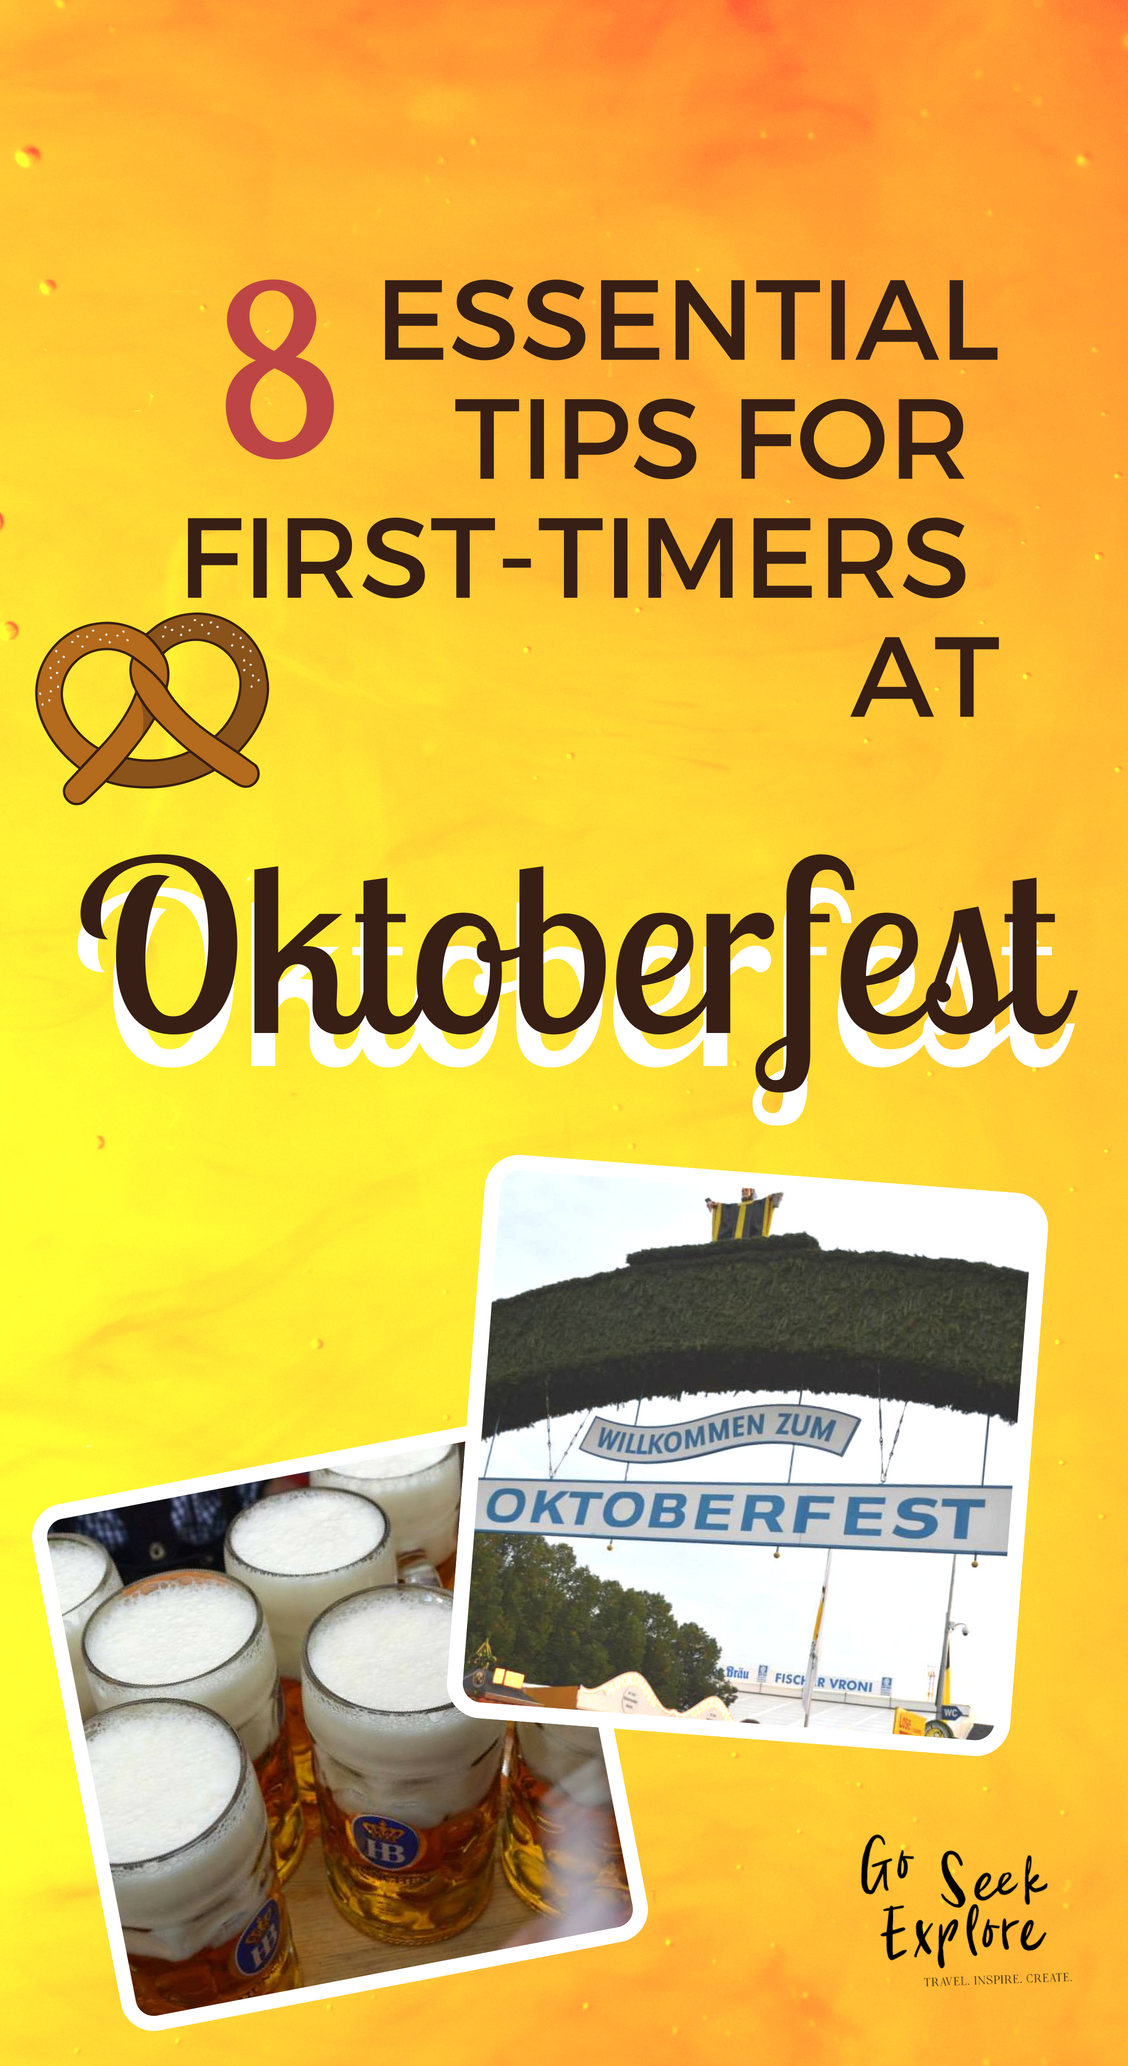 If this is your first time at Oktoberfest, you NEED to read this! Oktoberfest in Munich, Germany is one of THE most fun, exciting, and (sometimes) wild festivals in the world with millions attending annually. Equip yourself with these top 8 tips for a smooth first time at Oktoberfest. PROST :) / goseekexplore.com / essential-tips-first-time-oktoberfest